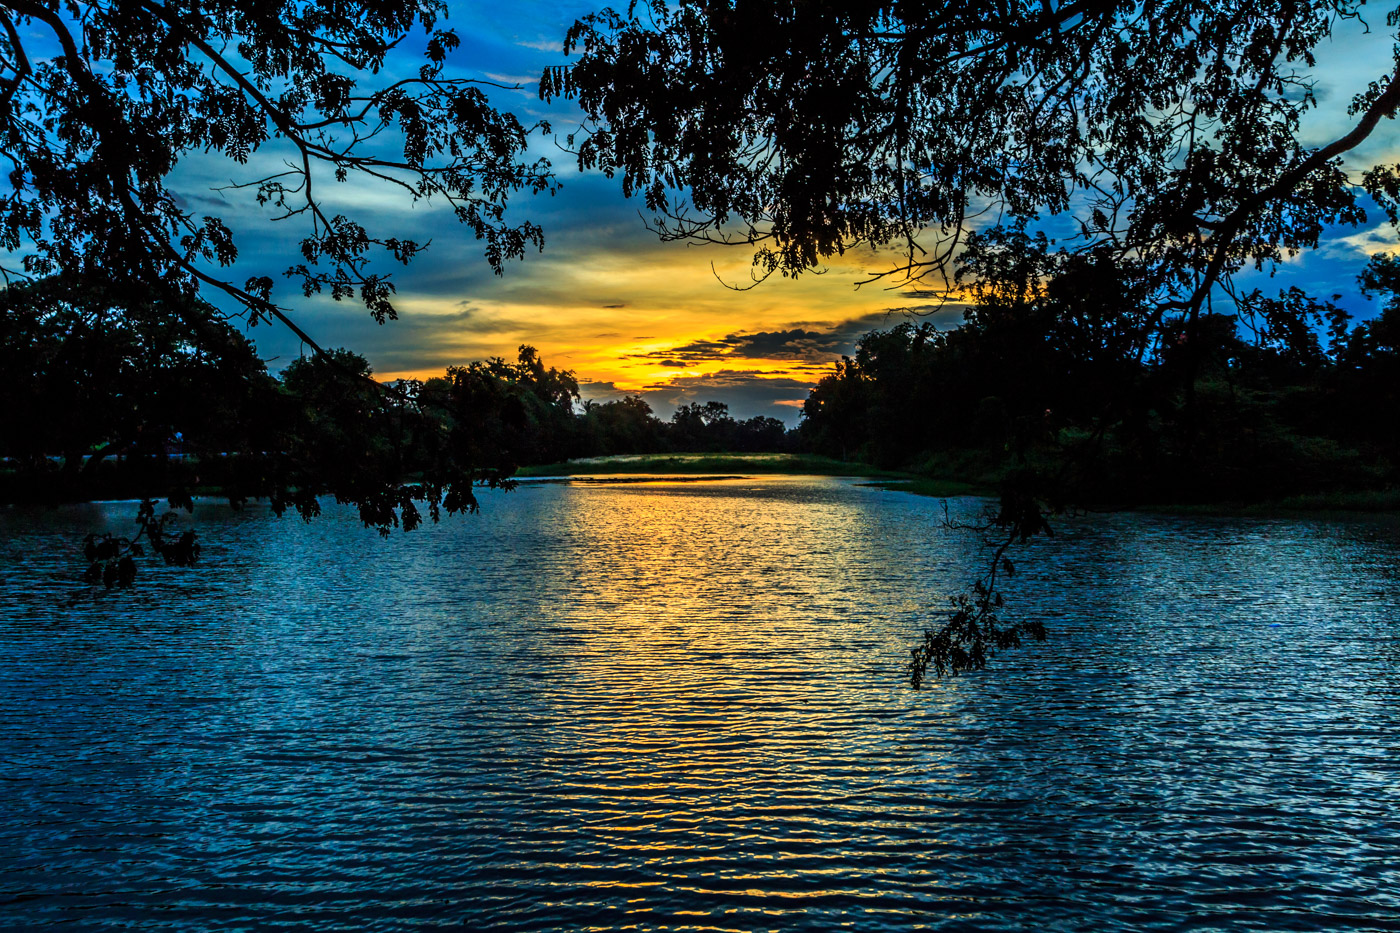 Sunset on the moat.